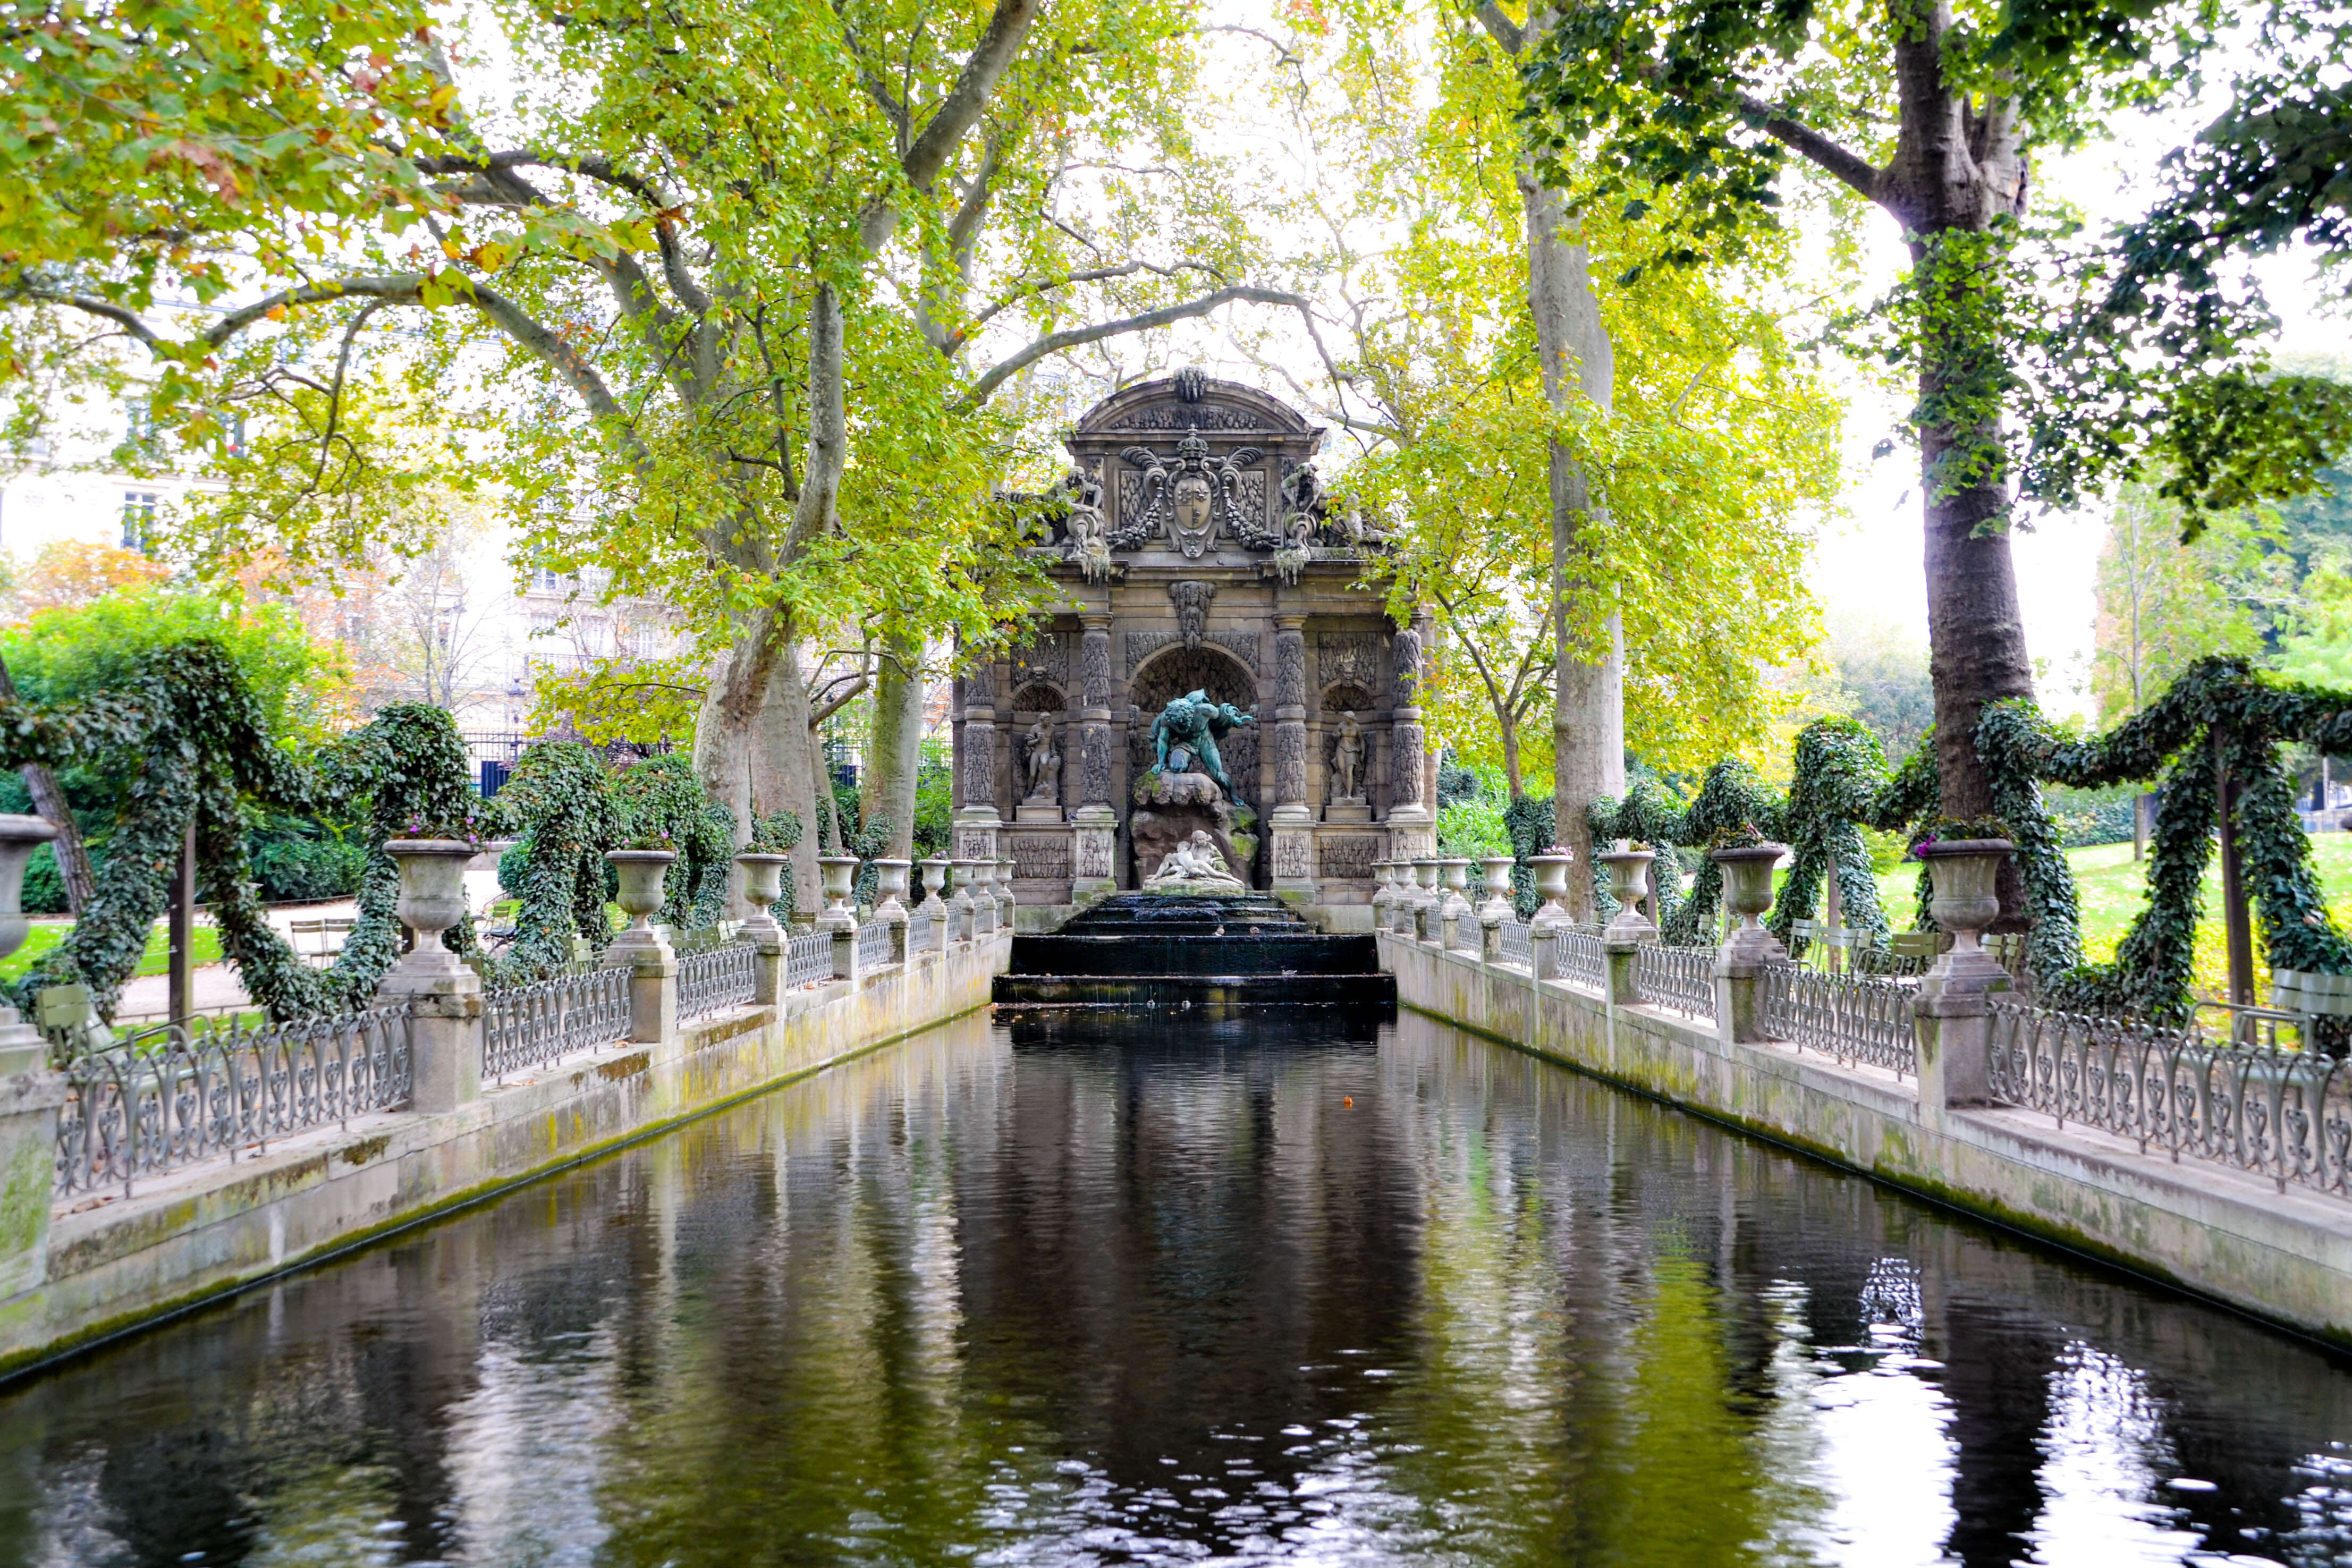 a canal in Luxembourg gardens Paris